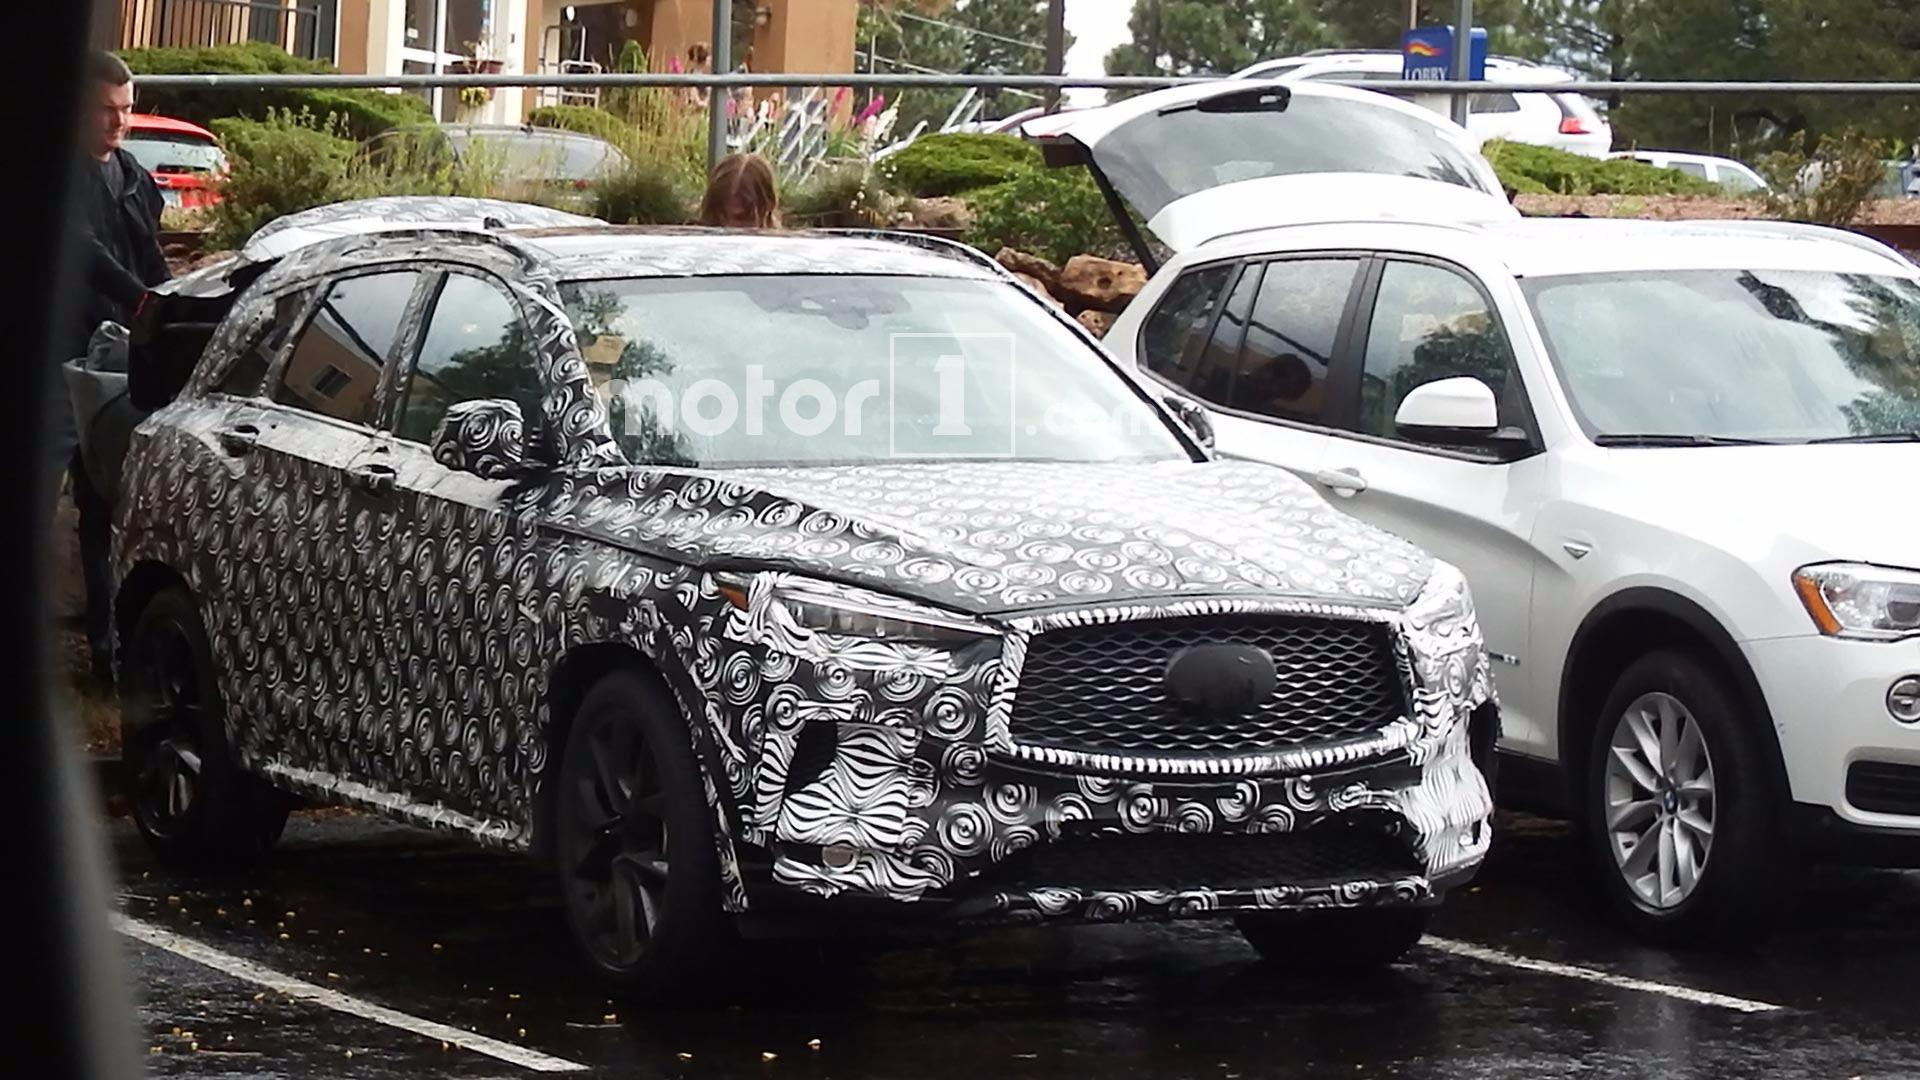 Qx50 For Sale >> 2018 Infiniti QX50 Spied With Undisguised Exterior